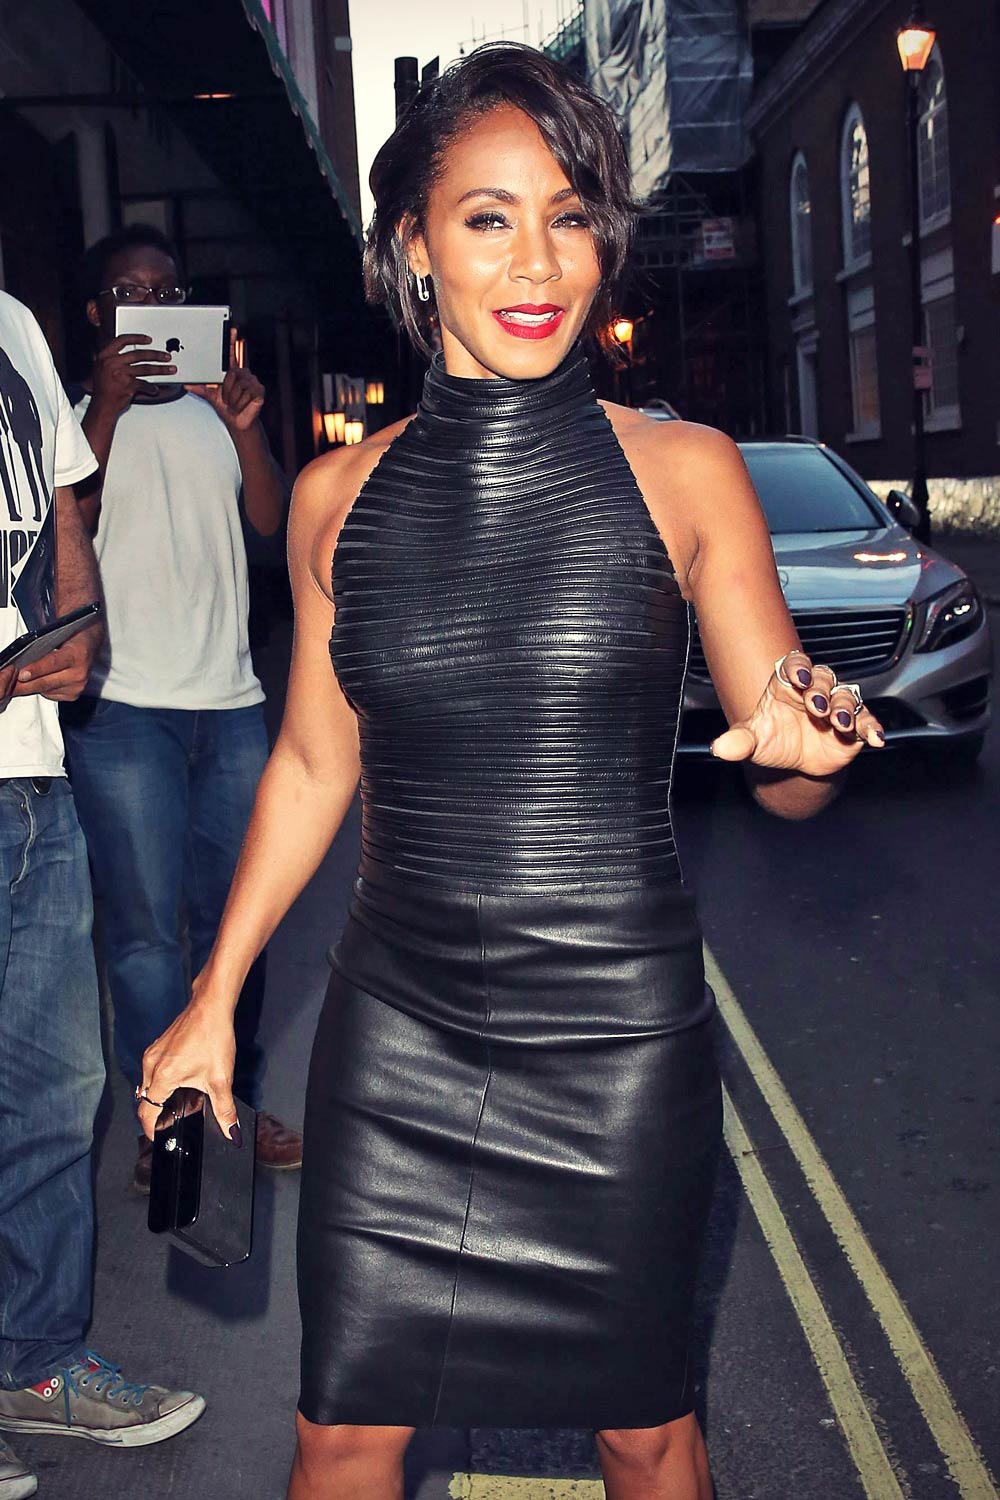 Jada Pinkett Smith seen at The Ivy in London